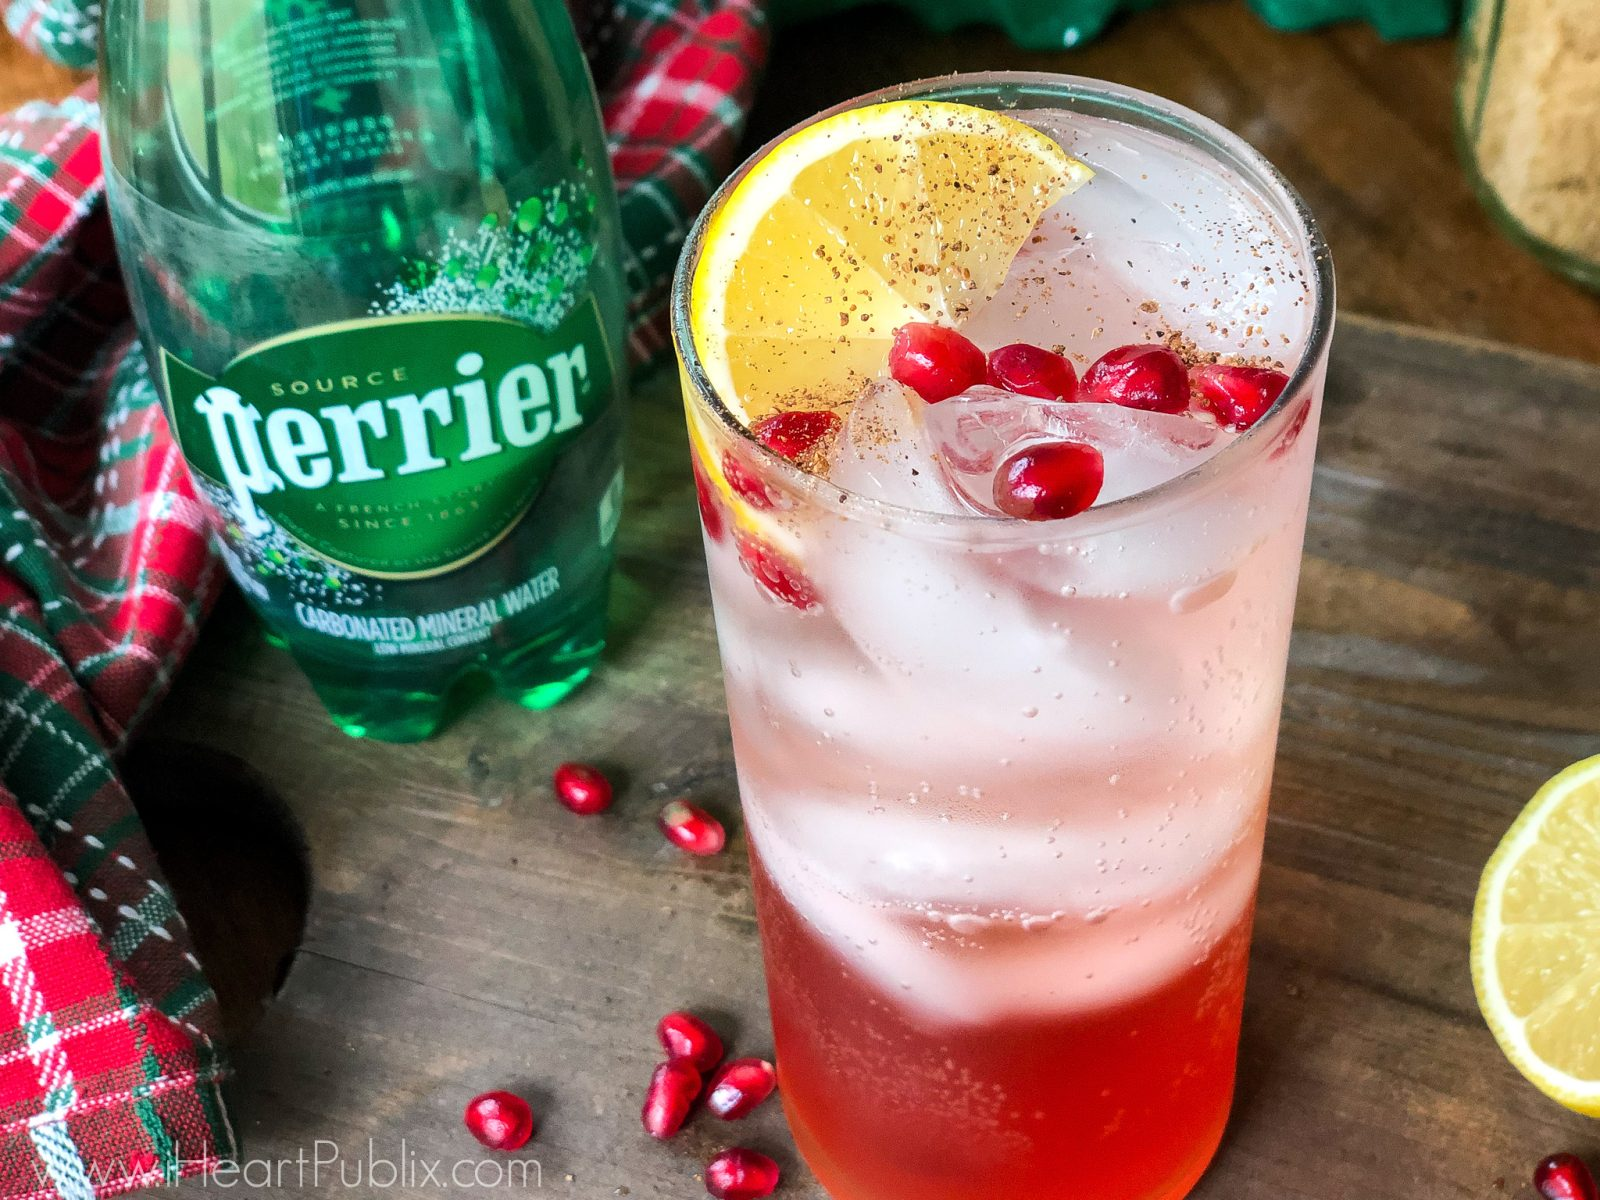 Try The Good Ole Time, A Tasty Cocktail Made With PERRIER® - Save Now At Publix on I Heart Publix